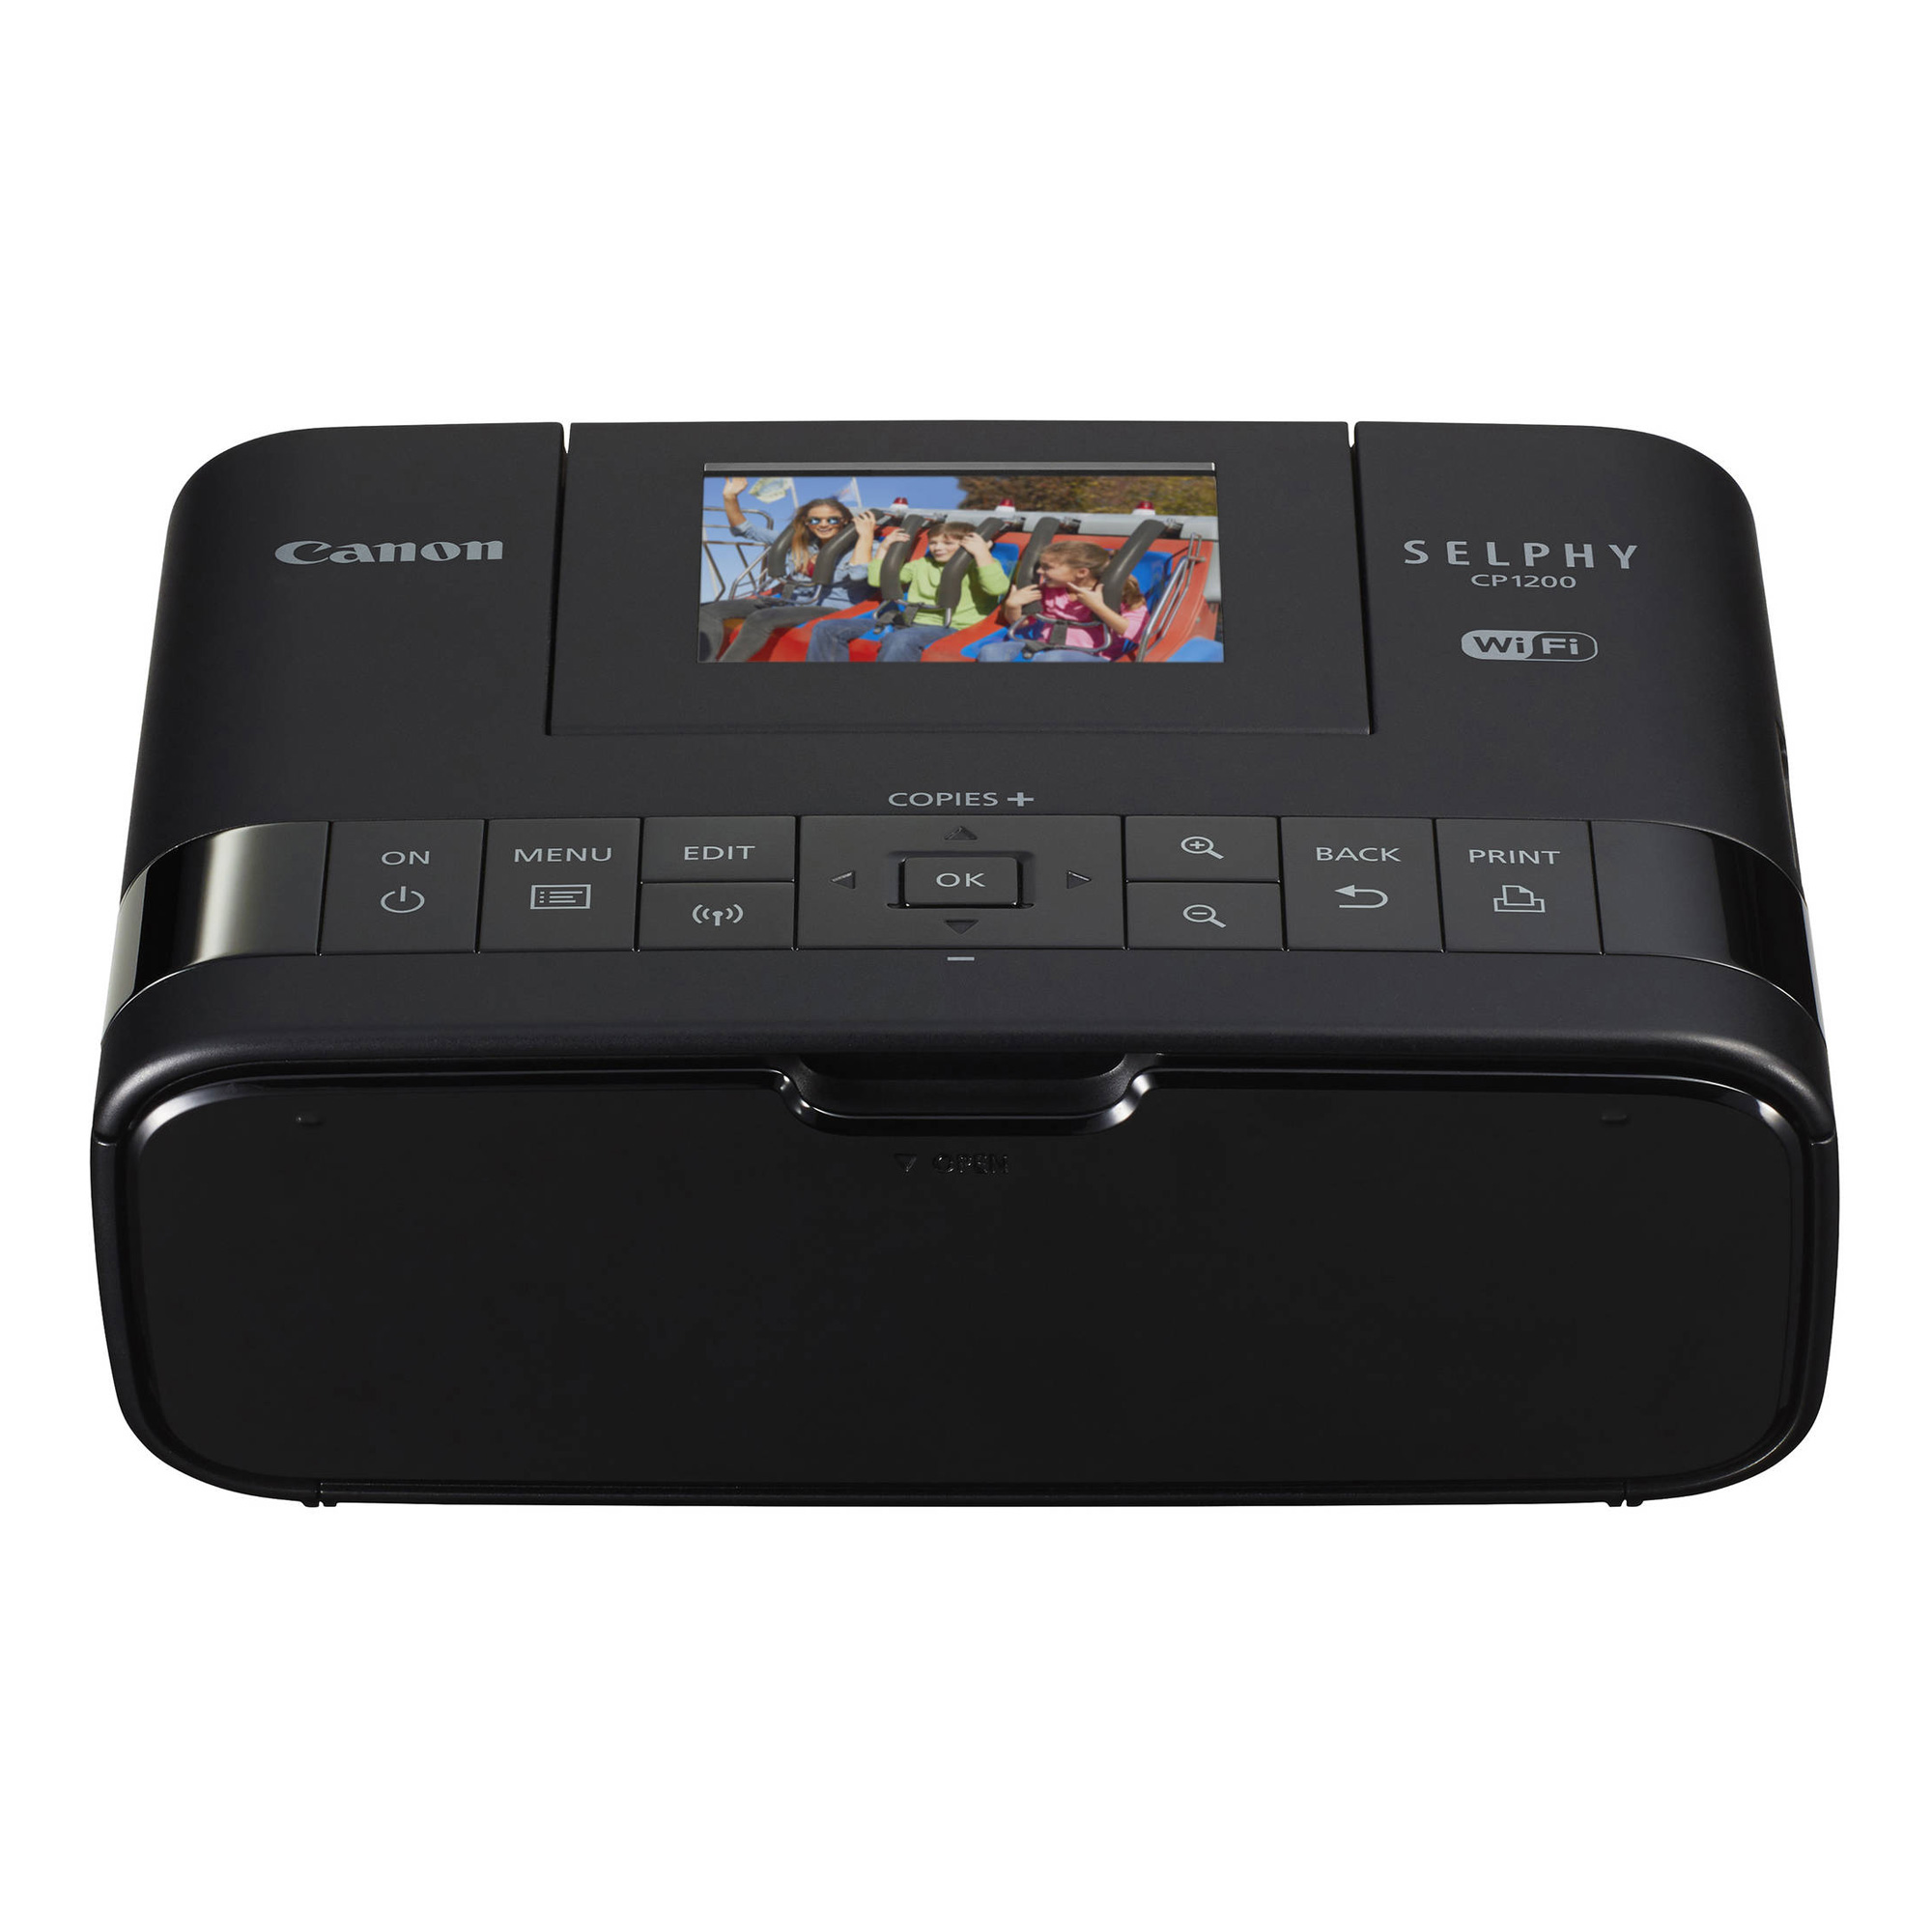 SELPHY CP1200 Wireless Compact Photo Printer Black